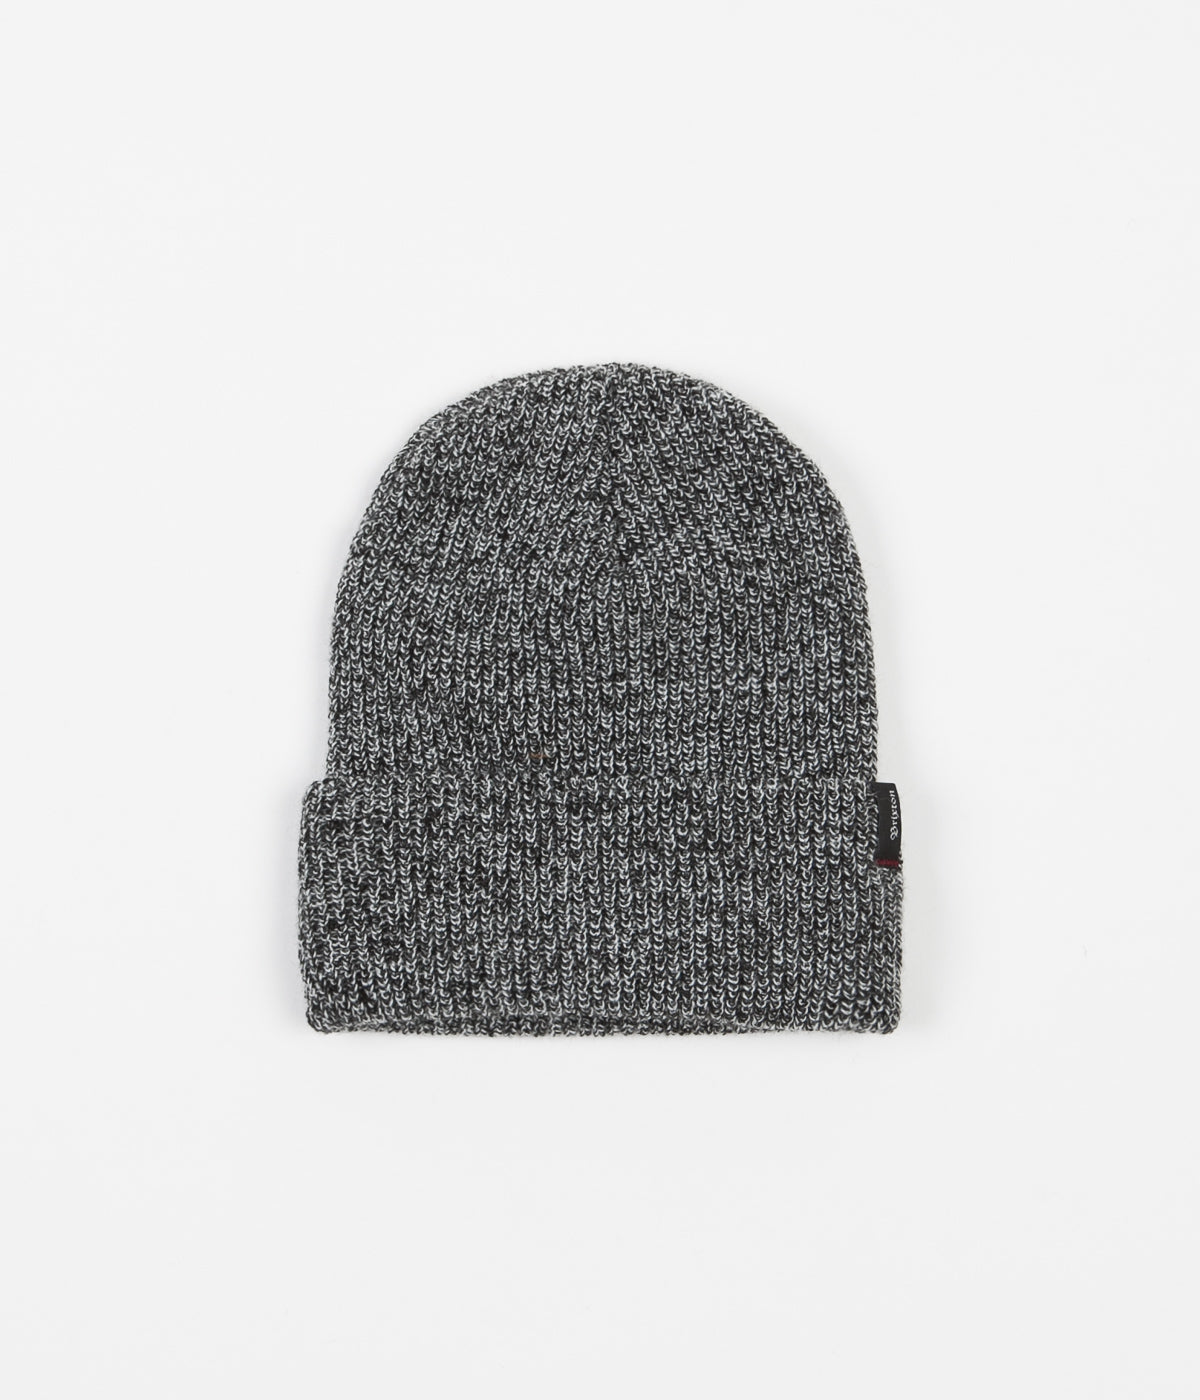 Brixton Heist Beanie - Black / Heather Grey